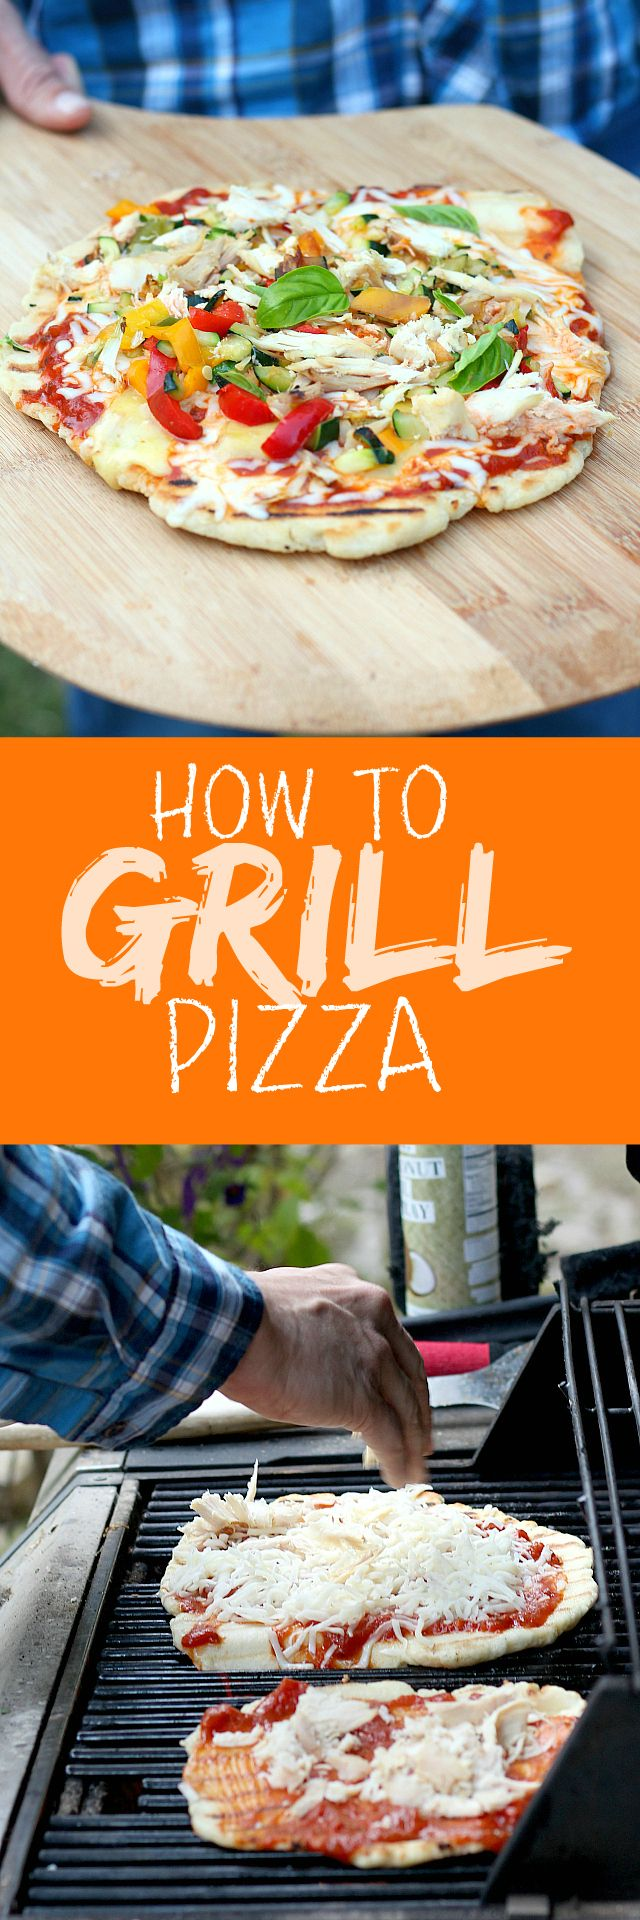 How To Make An Excellent Grilled Pizza is part of pizza - Excellent pizza fired up on the grill provides a great excuse to enjoy food away from the kitchen! How to make grilled pizza ready in less than 30 minutes!